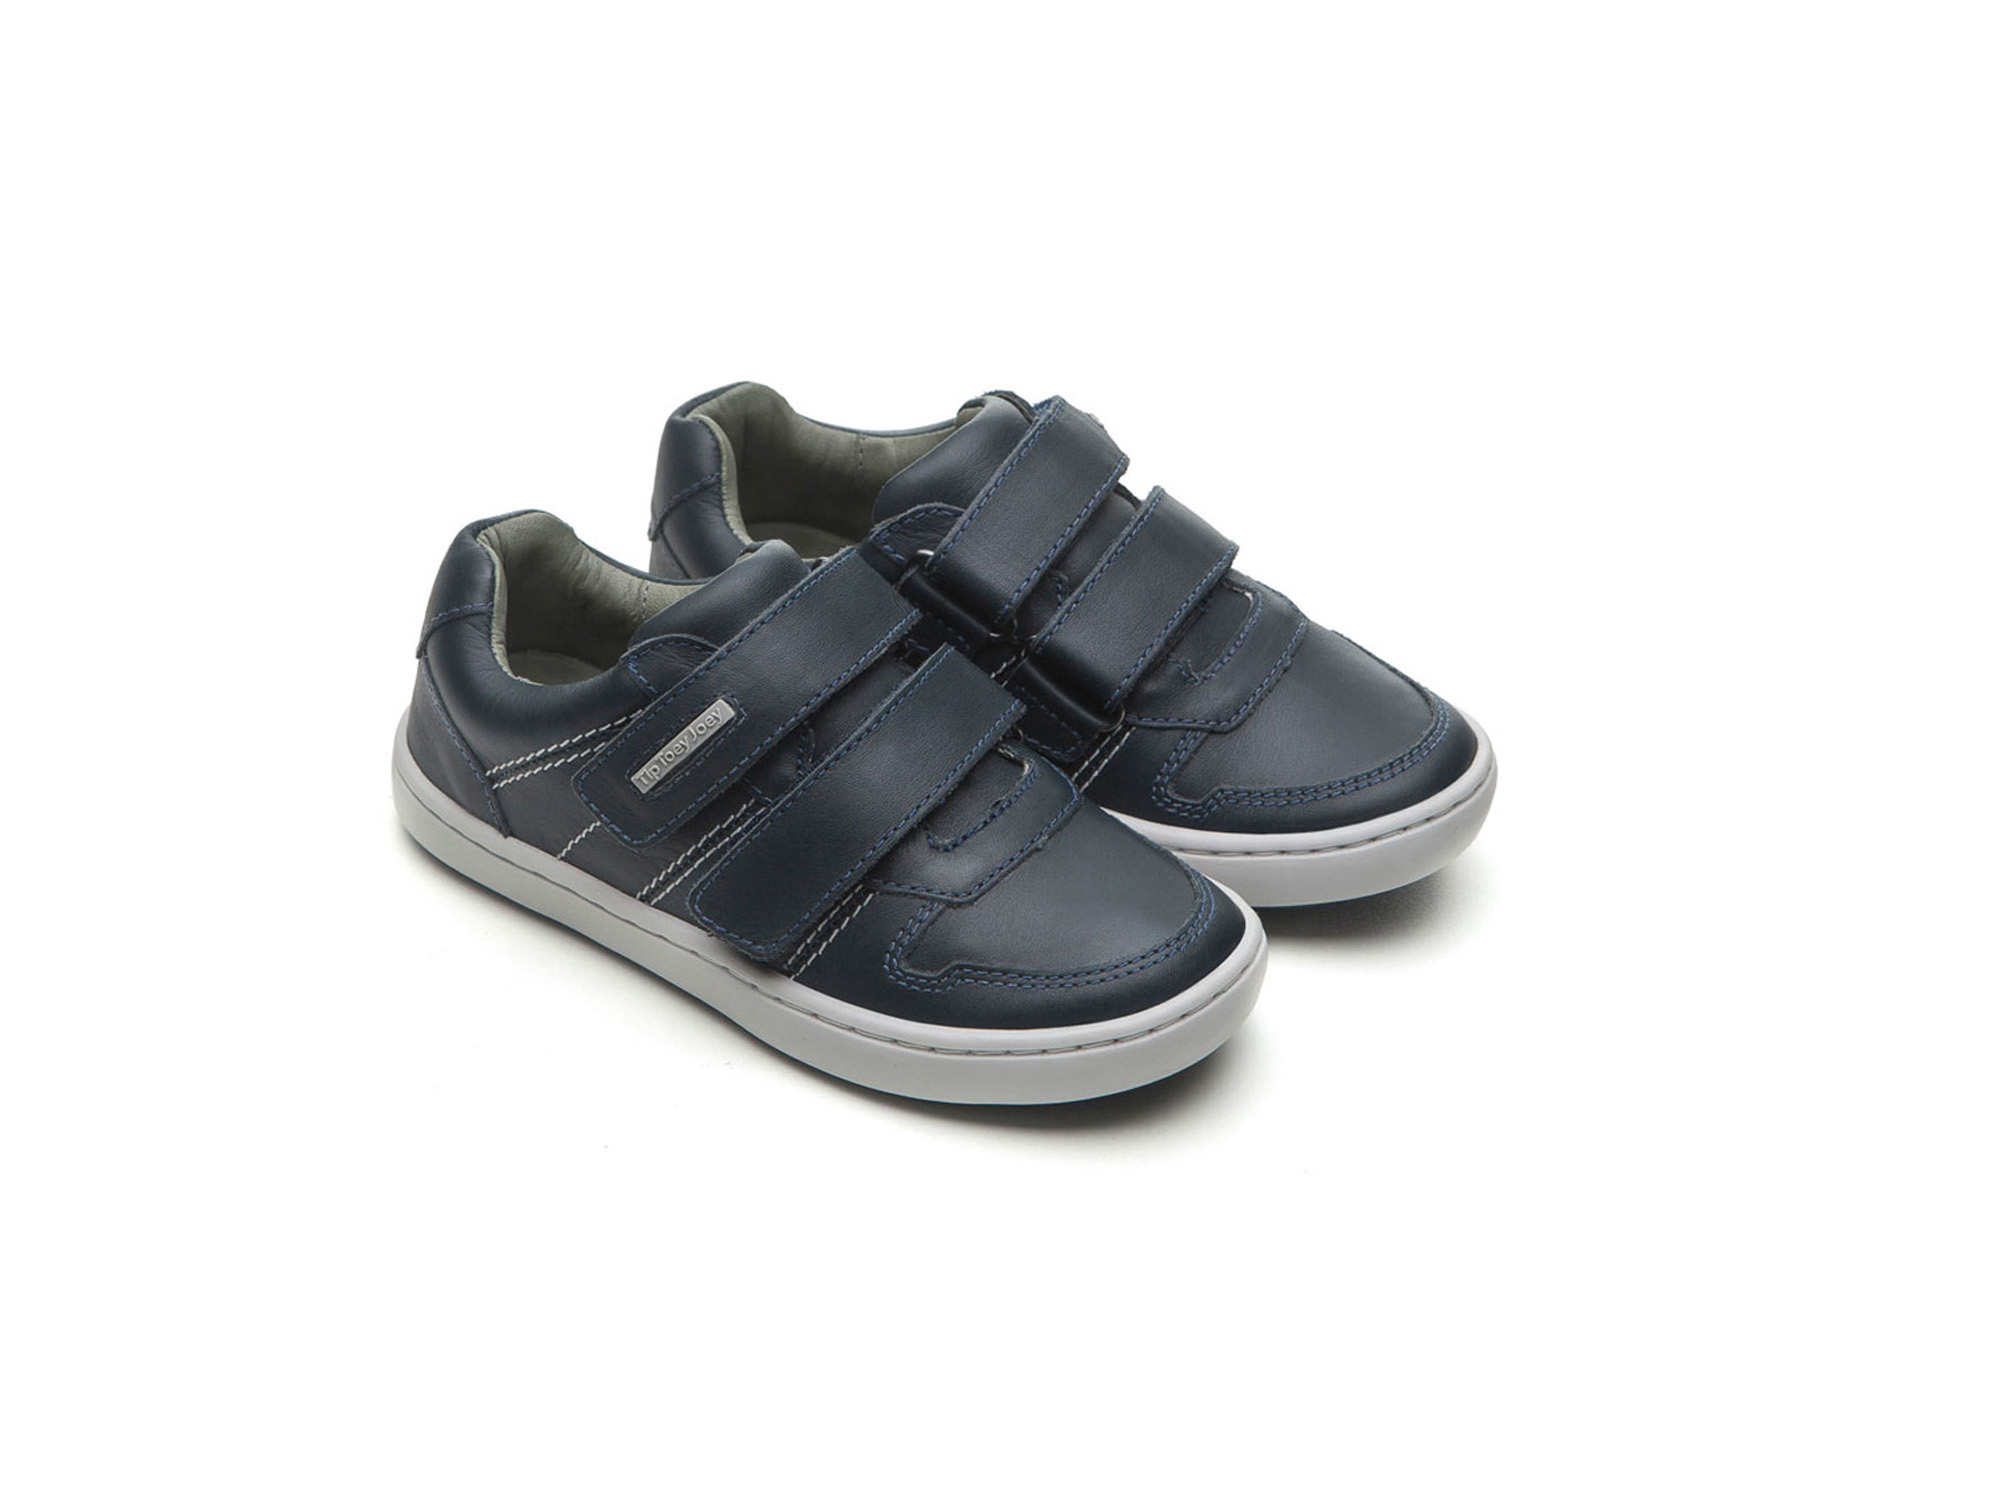 Tênis Little Dusk Navy  Toddler 2 à 4 anos - 0